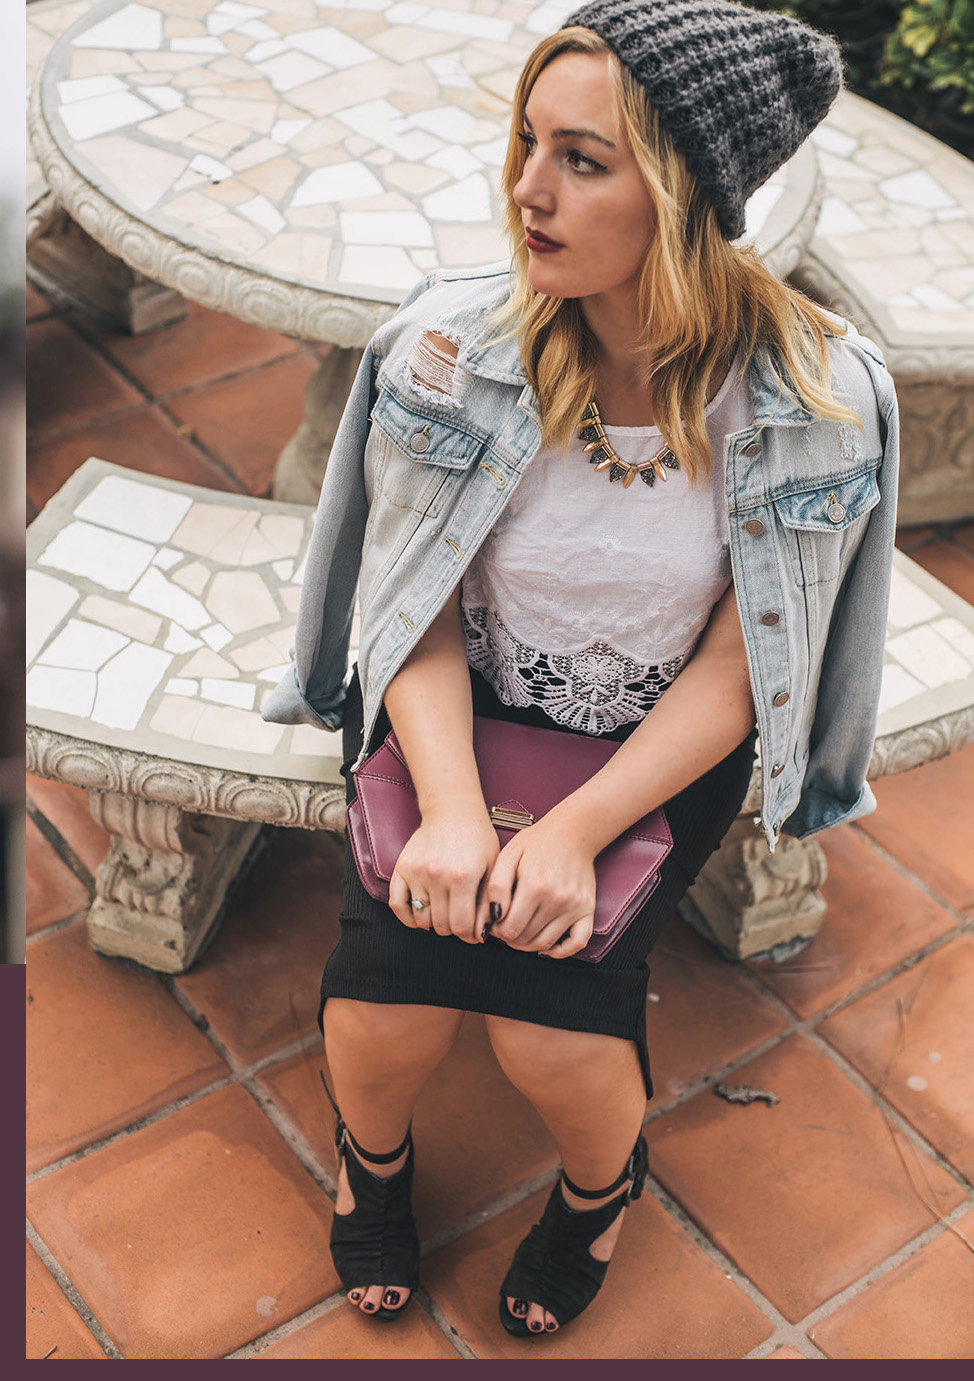 pencil skirt_brandy melville jacket.jpg